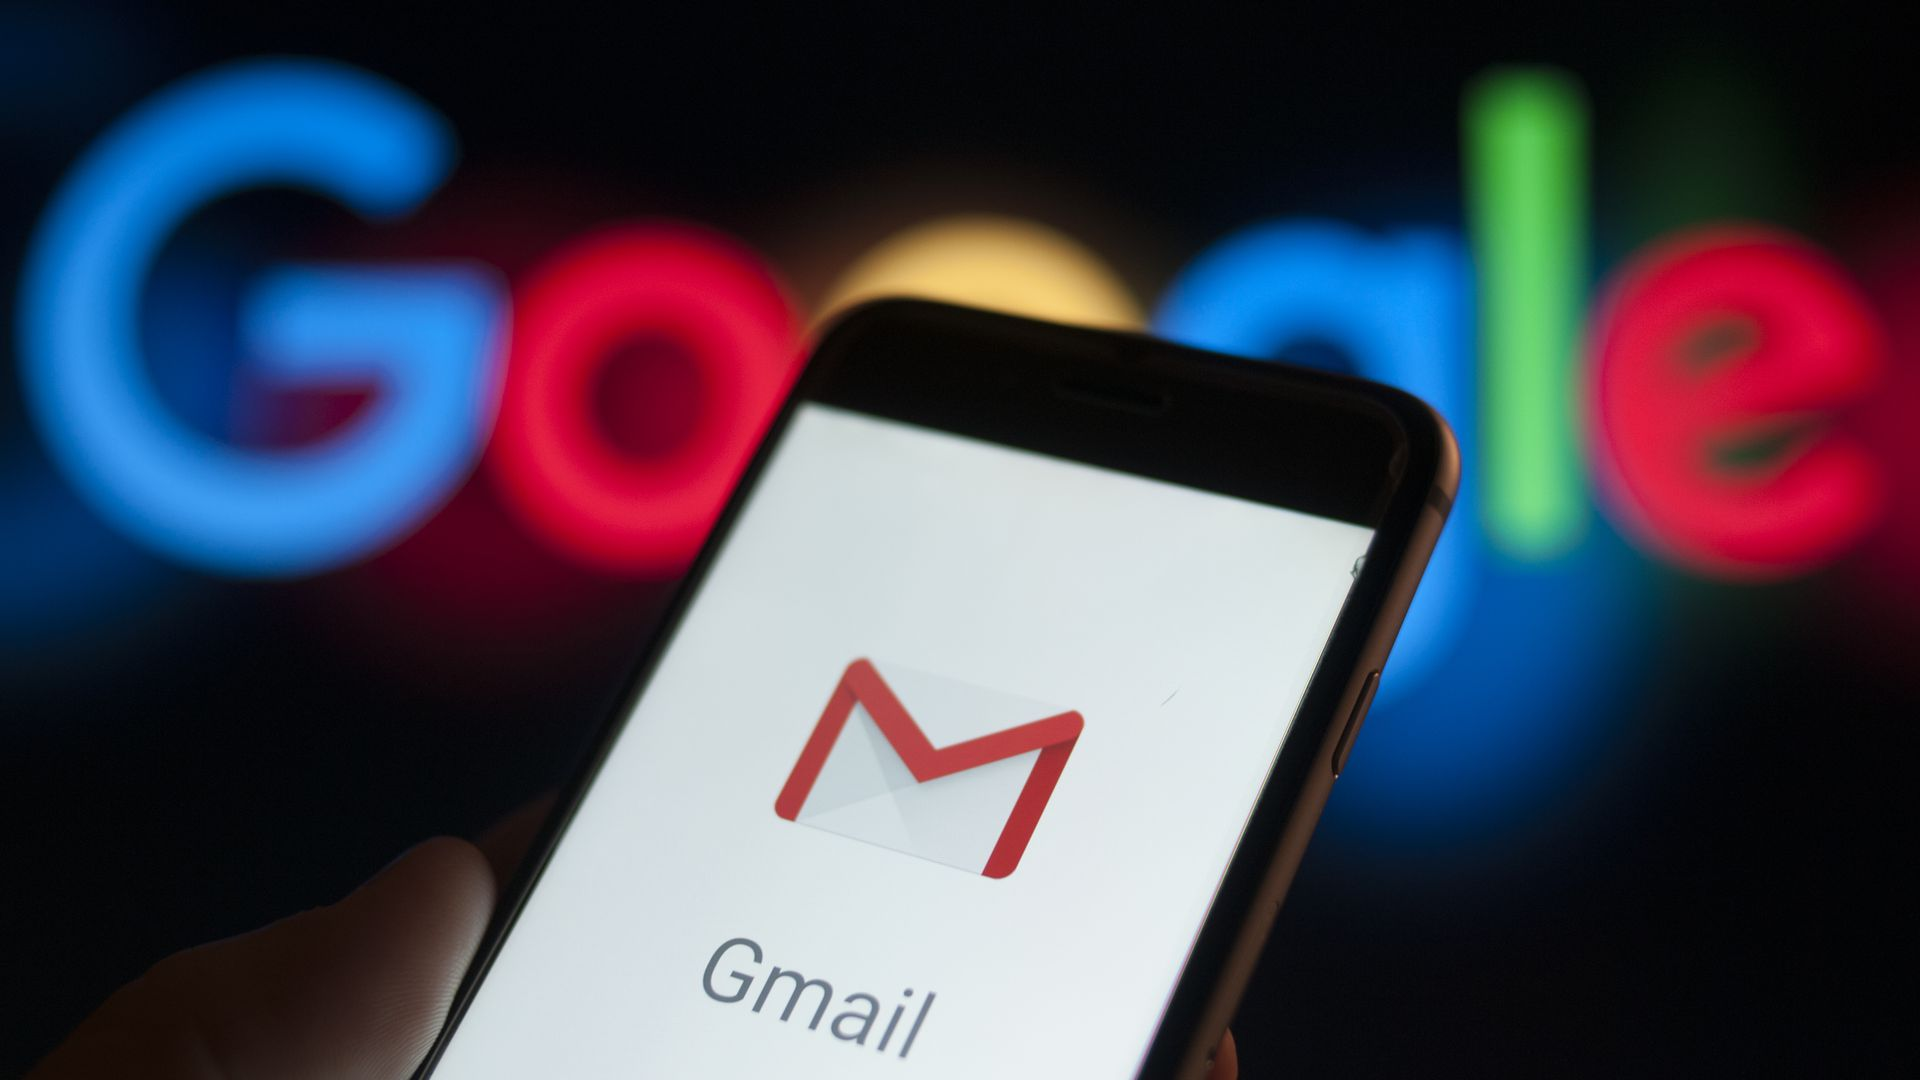 A phone screen with the Gmail app logo on it before the Google logo on a wall.